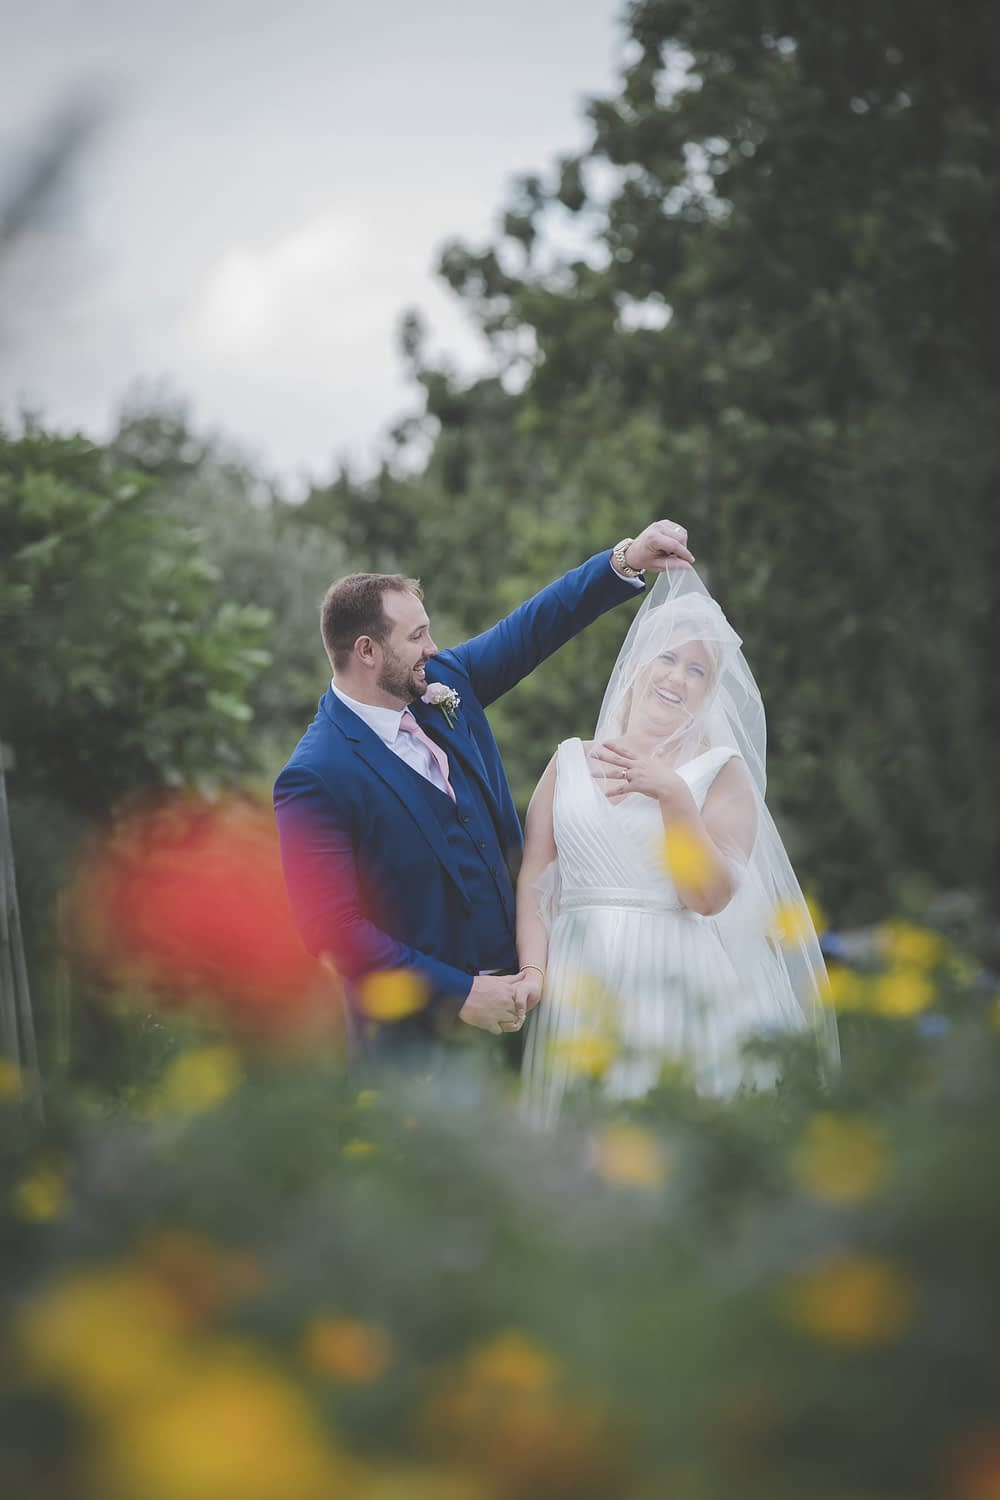 couple standing together with veil blowing in the air